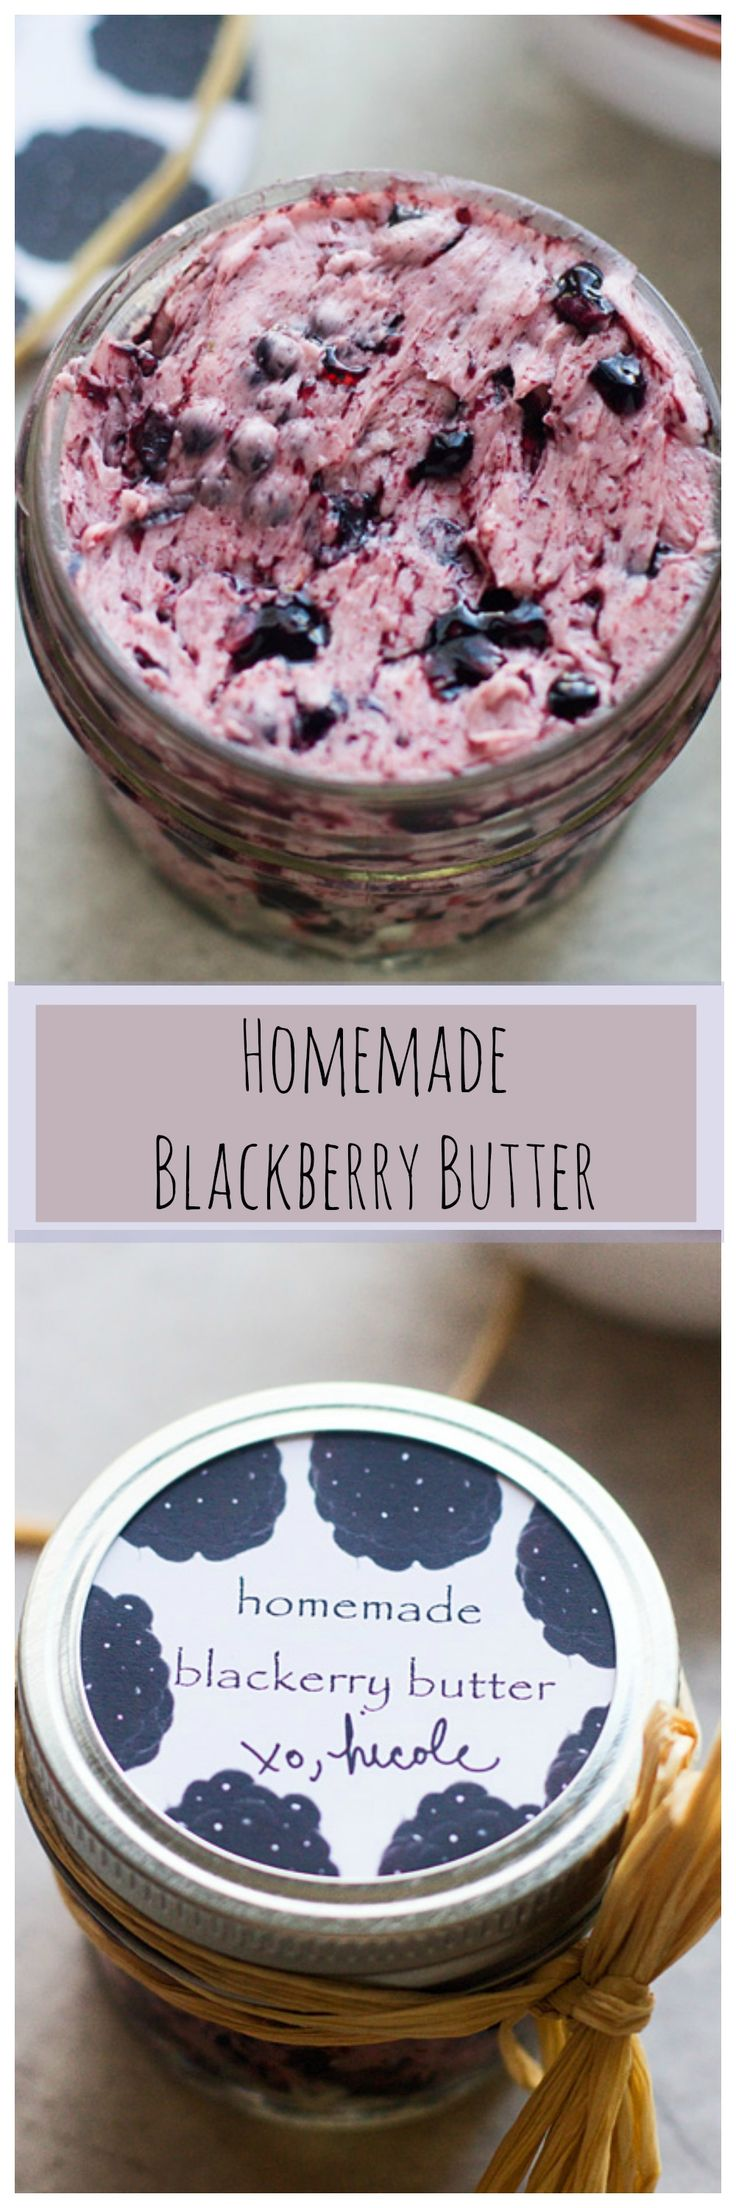 Homemade Blackberry Butter -- With super cute labels made with my Sprout by Hp!! #CIY #sproutbyhp